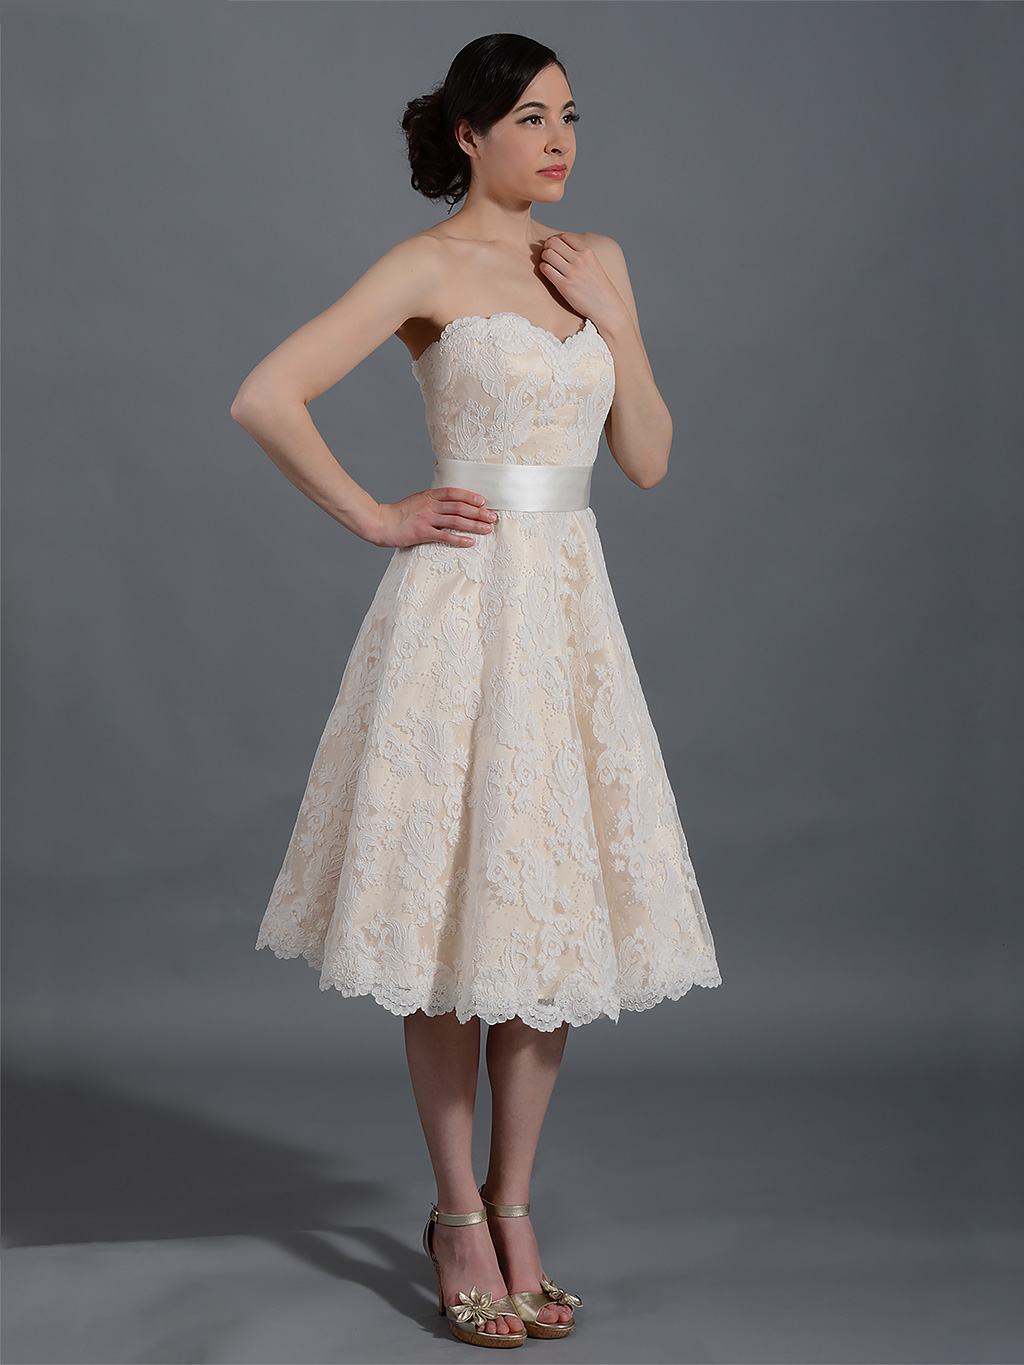 Short Strapless Sweetheart Lace overlay Satin Knee Length